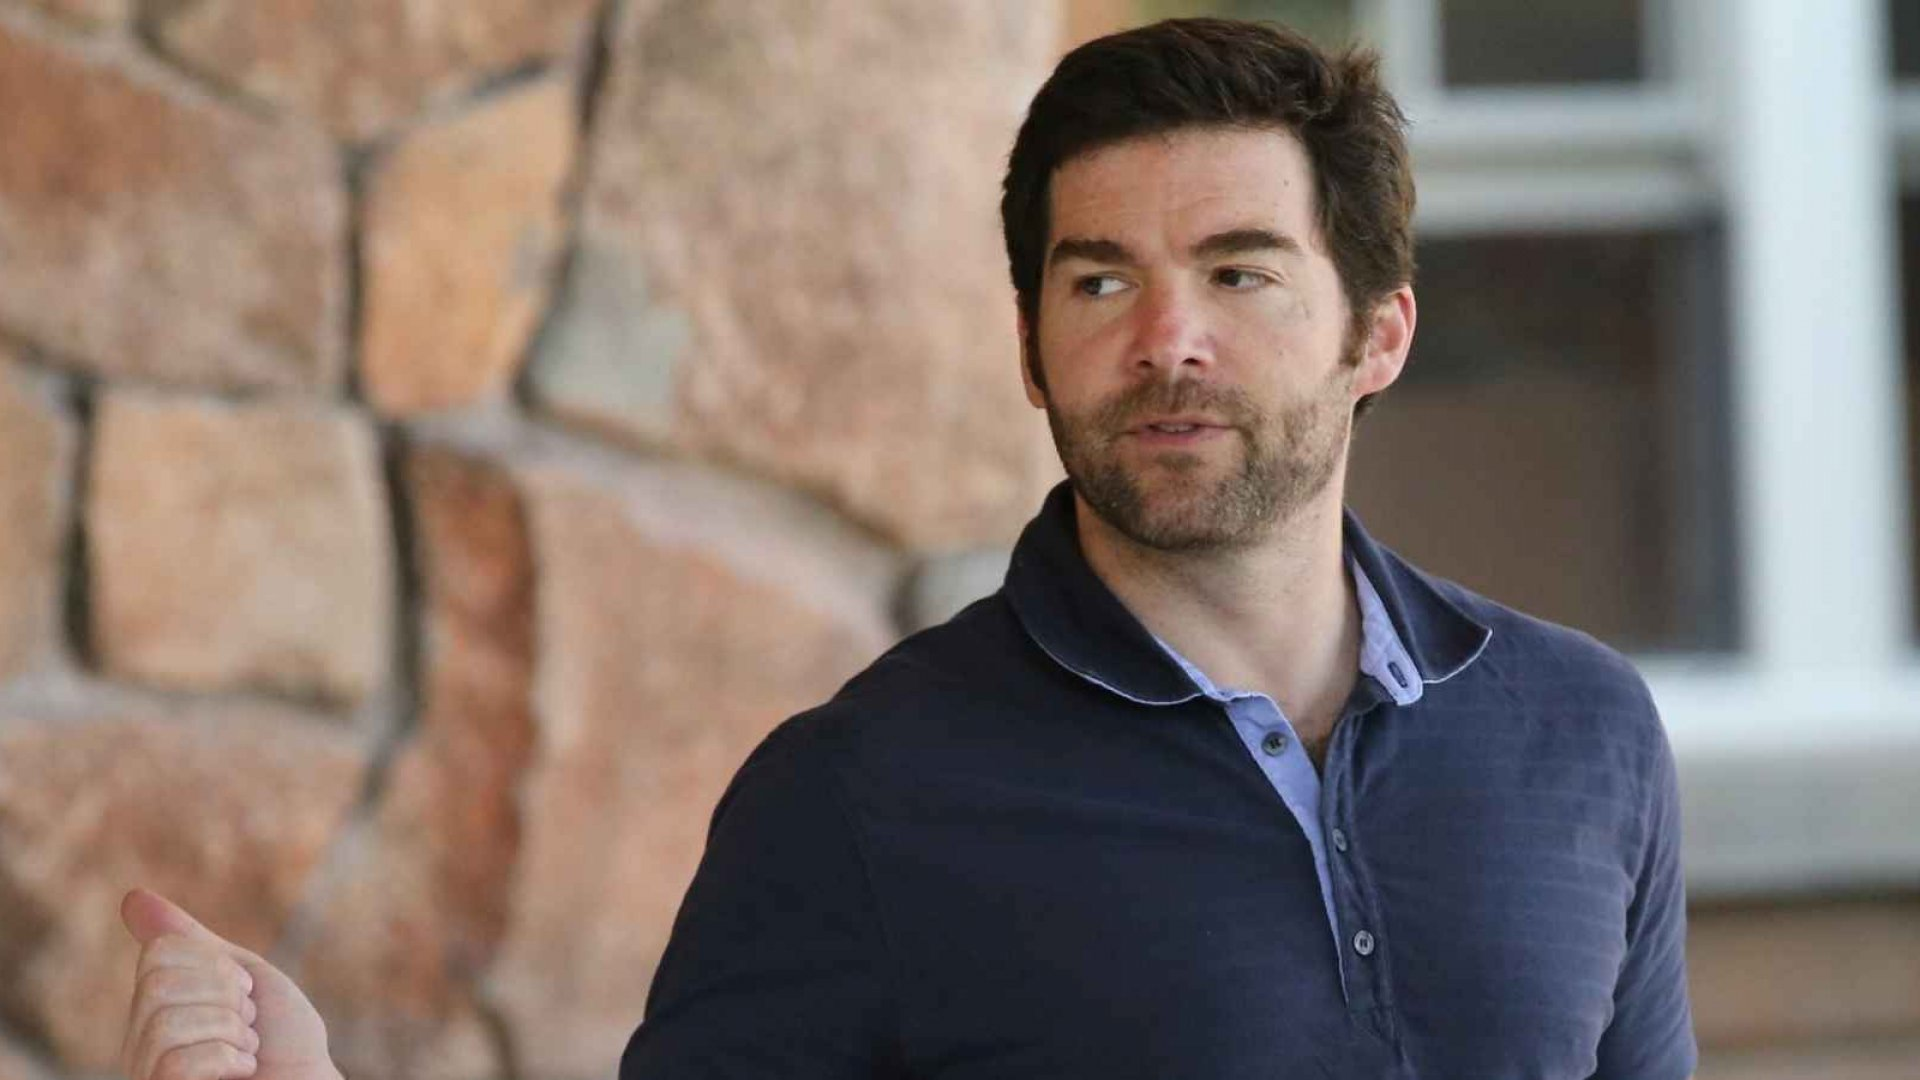 LinkedIn CEO Jeff Weiner Gives His $14 Million Stock Bonus to His Employees